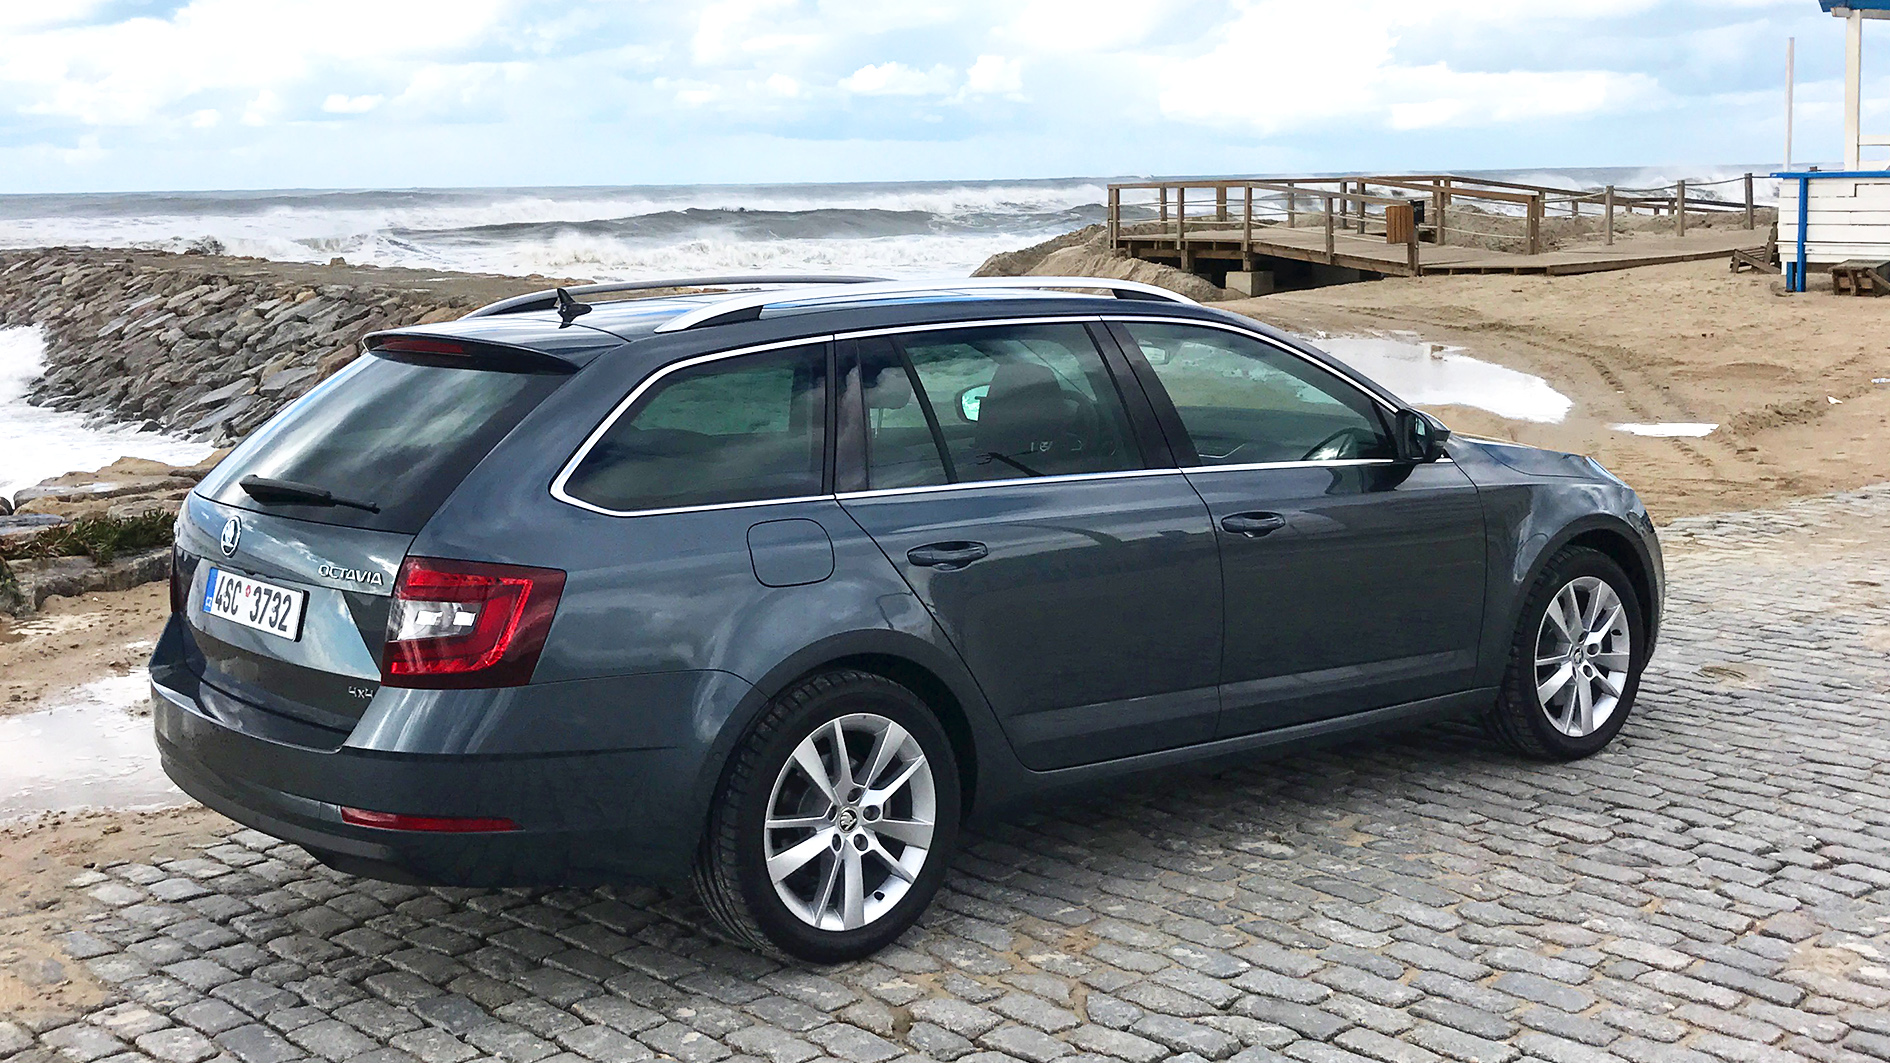 skoda octavia 2017 facelift 2 0 tdi combi test fahrbericht auto deutsch die autotester. Black Bedroom Furniture Sets. Home Design Ideas